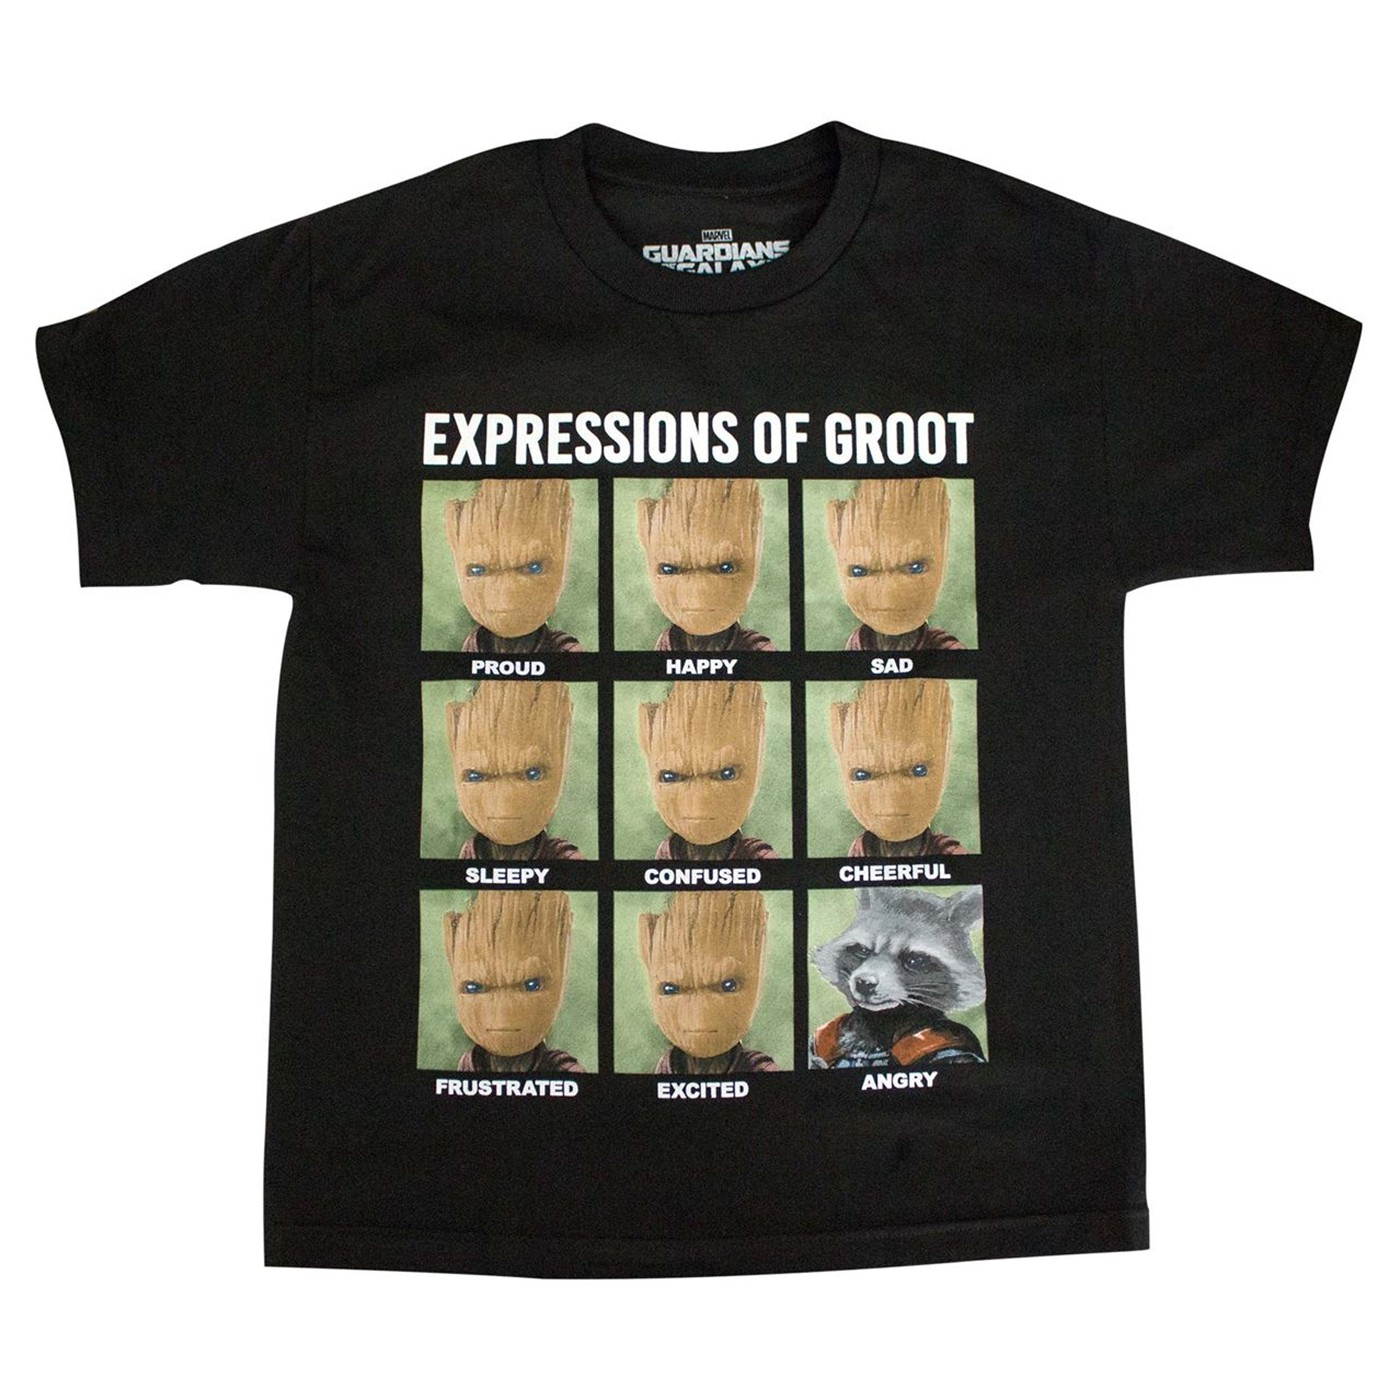 Expressions of Groot and Rocket Boys T-shirt